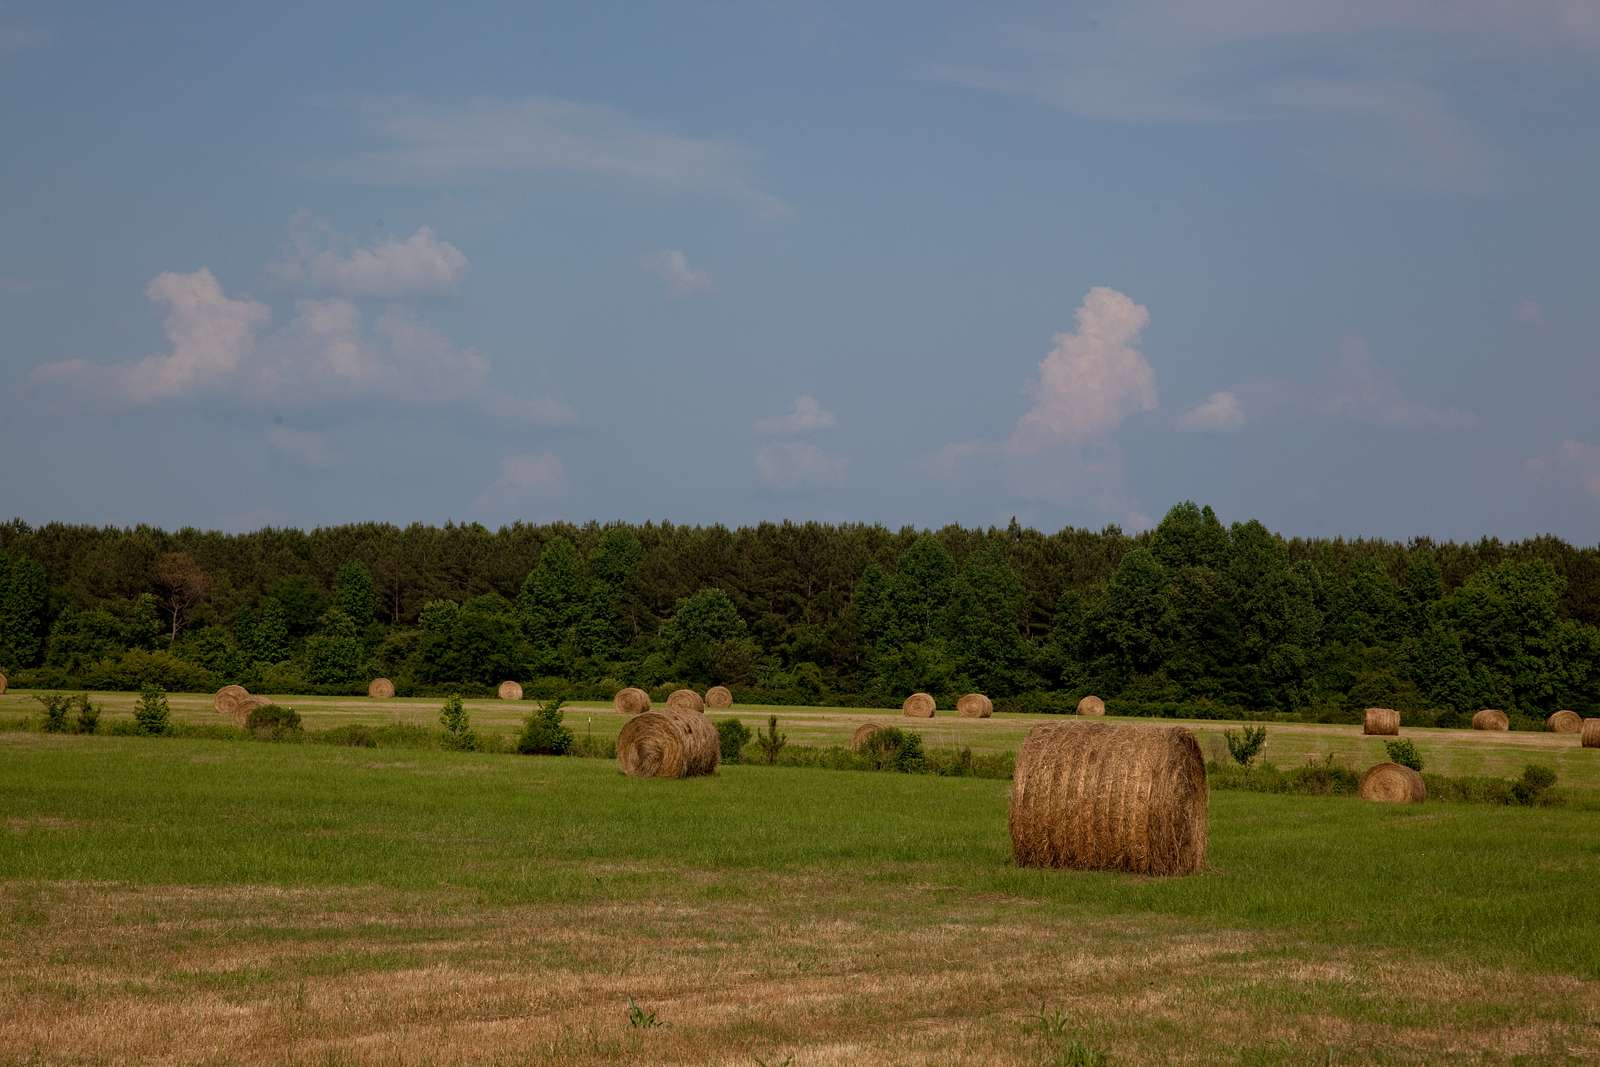 Hay bales dot the landscape of the 69.2 acre farm owned by Johnny and Chinita Hinton near Carrollton, Alabama